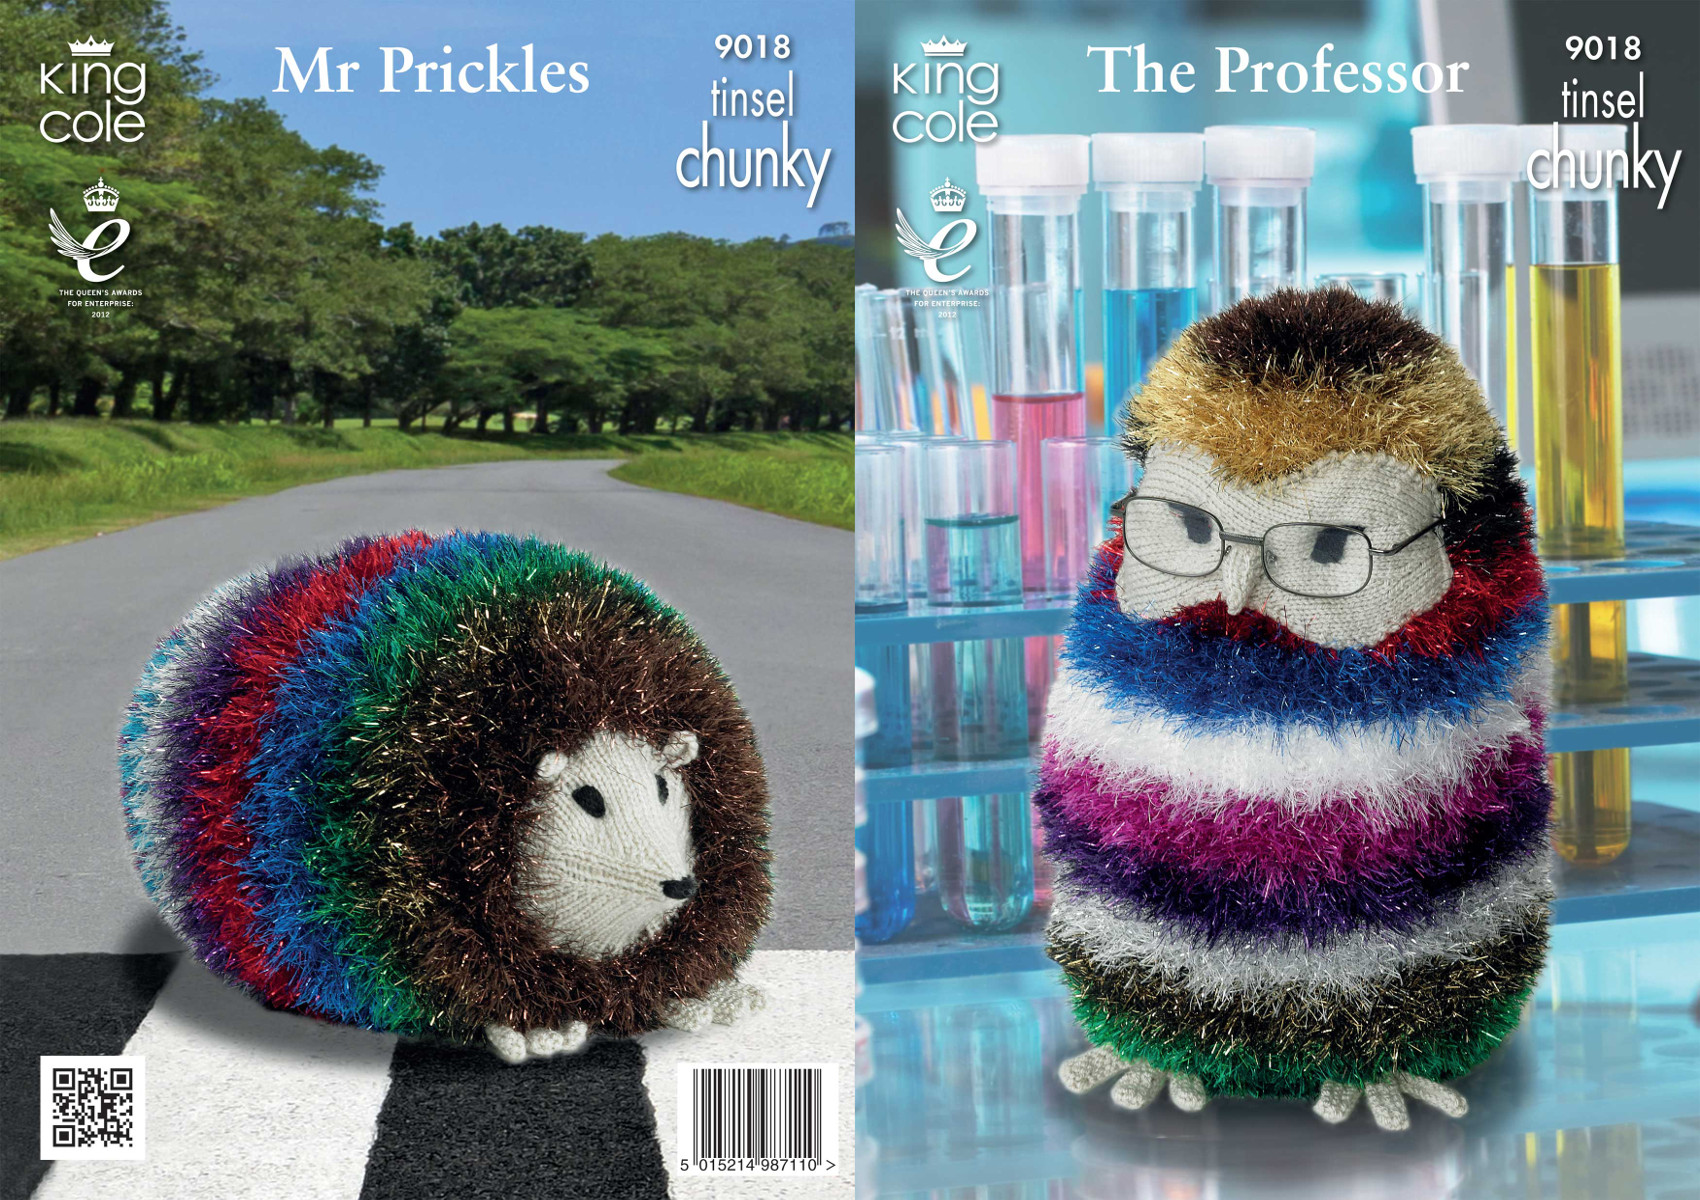 King Cole The Professor Owl & Mr Prickles Hedgehog Tinsel ...